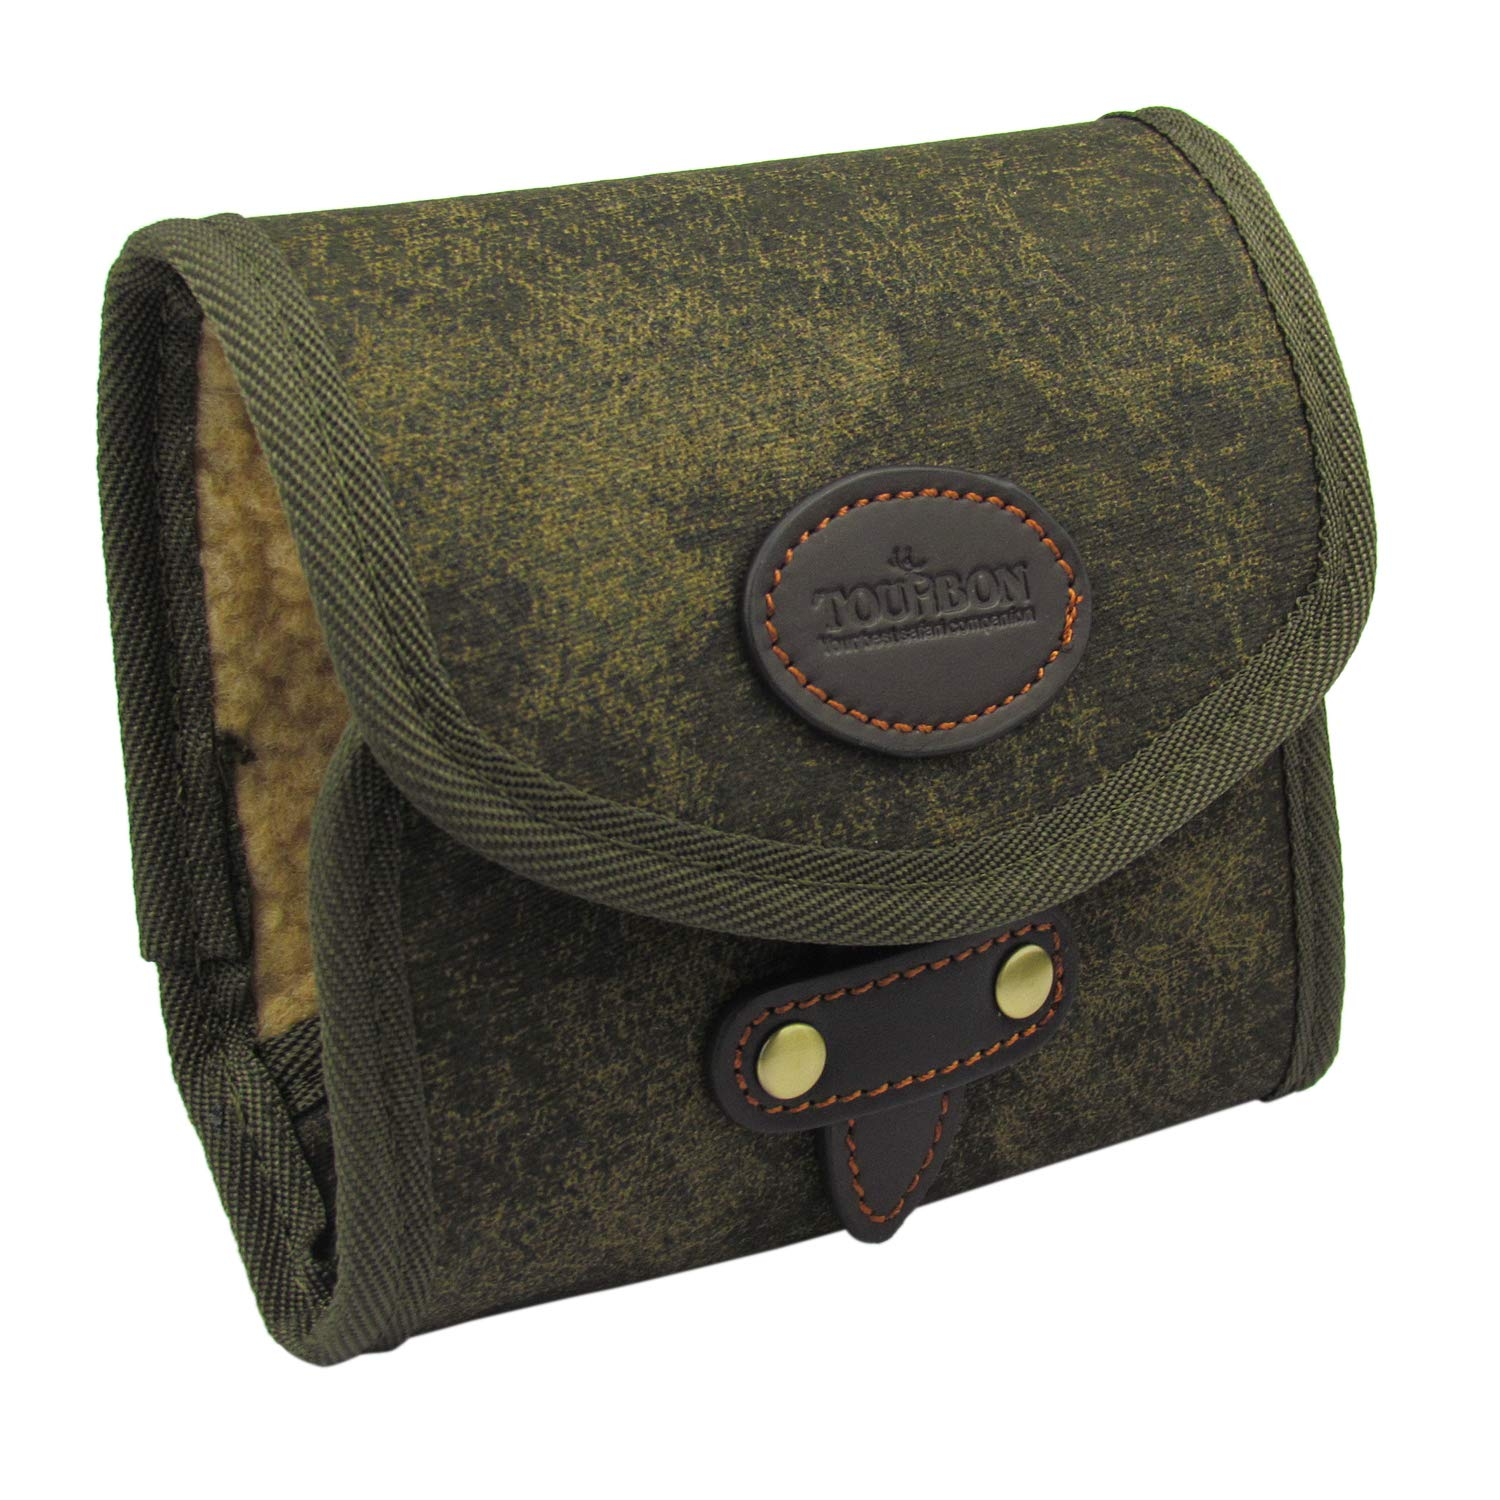 Canvas and Leather Tourbon Vintage Fly Fishing Wallet